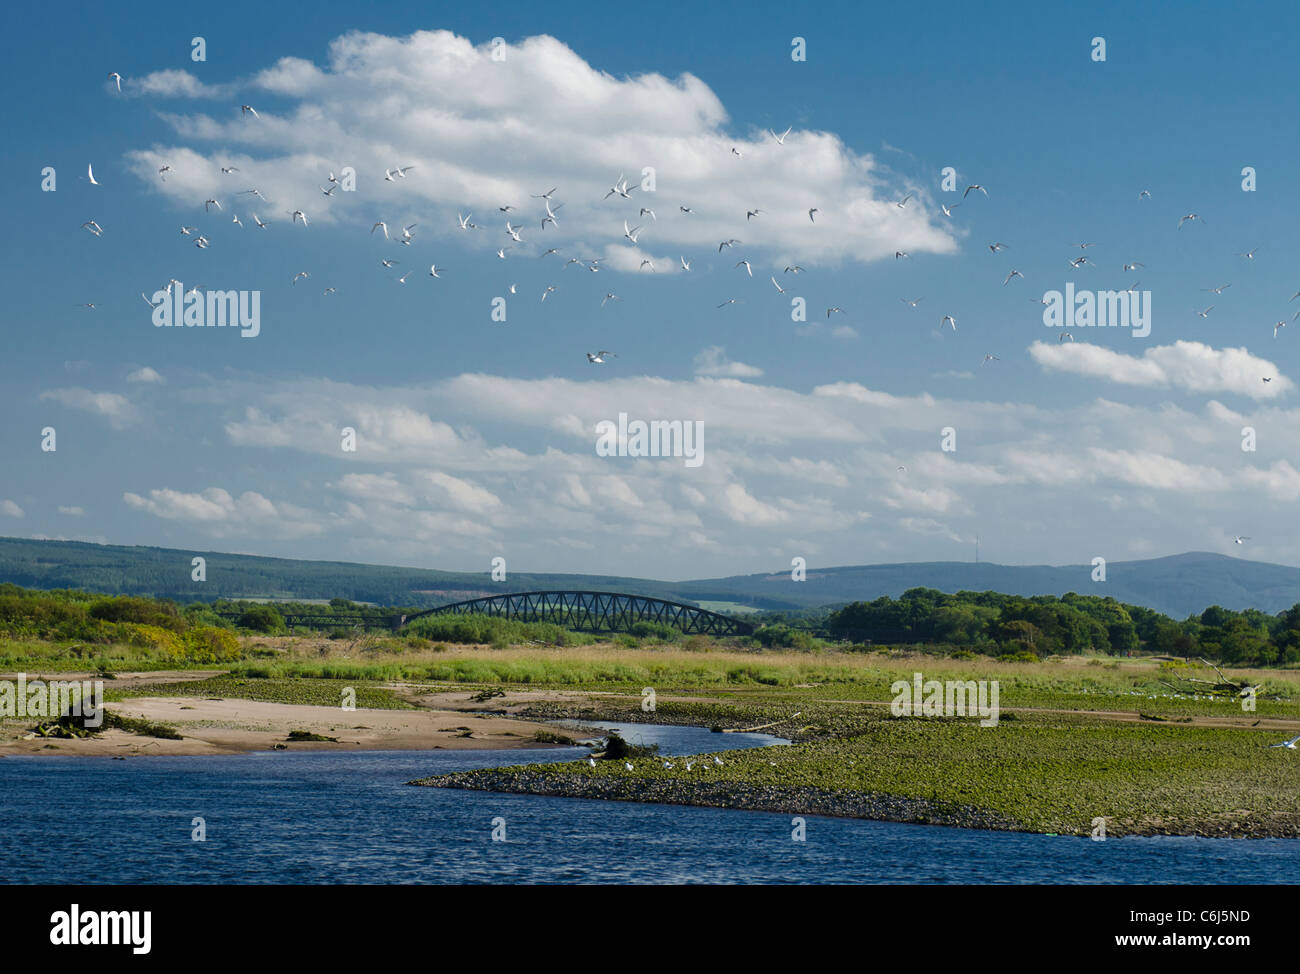 View of metal bridge with terns in flight and estuary of River Spey at Spey Bay, Moray Coast - Stock Image